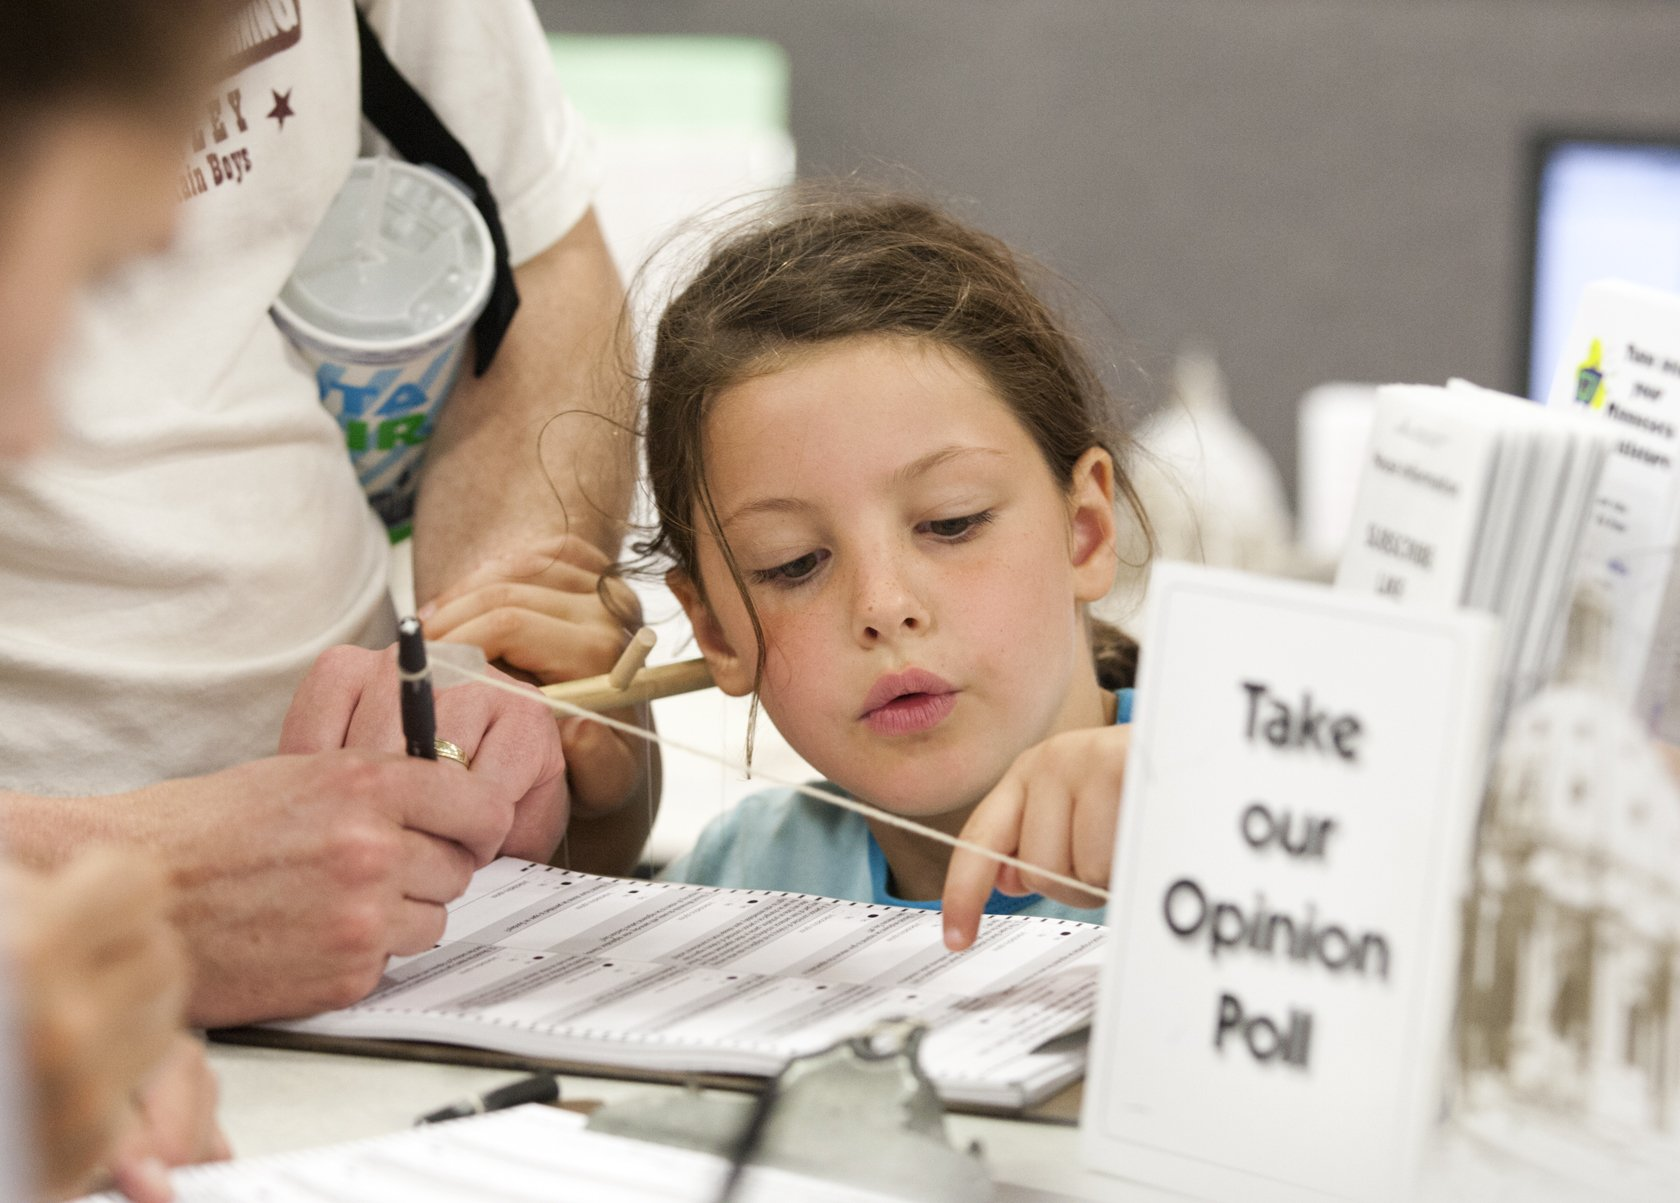 (Photo by Paul Battaglia) A young visitor checks over her dad's answers to the annual House opinion poll at the Minnesota State Fair.